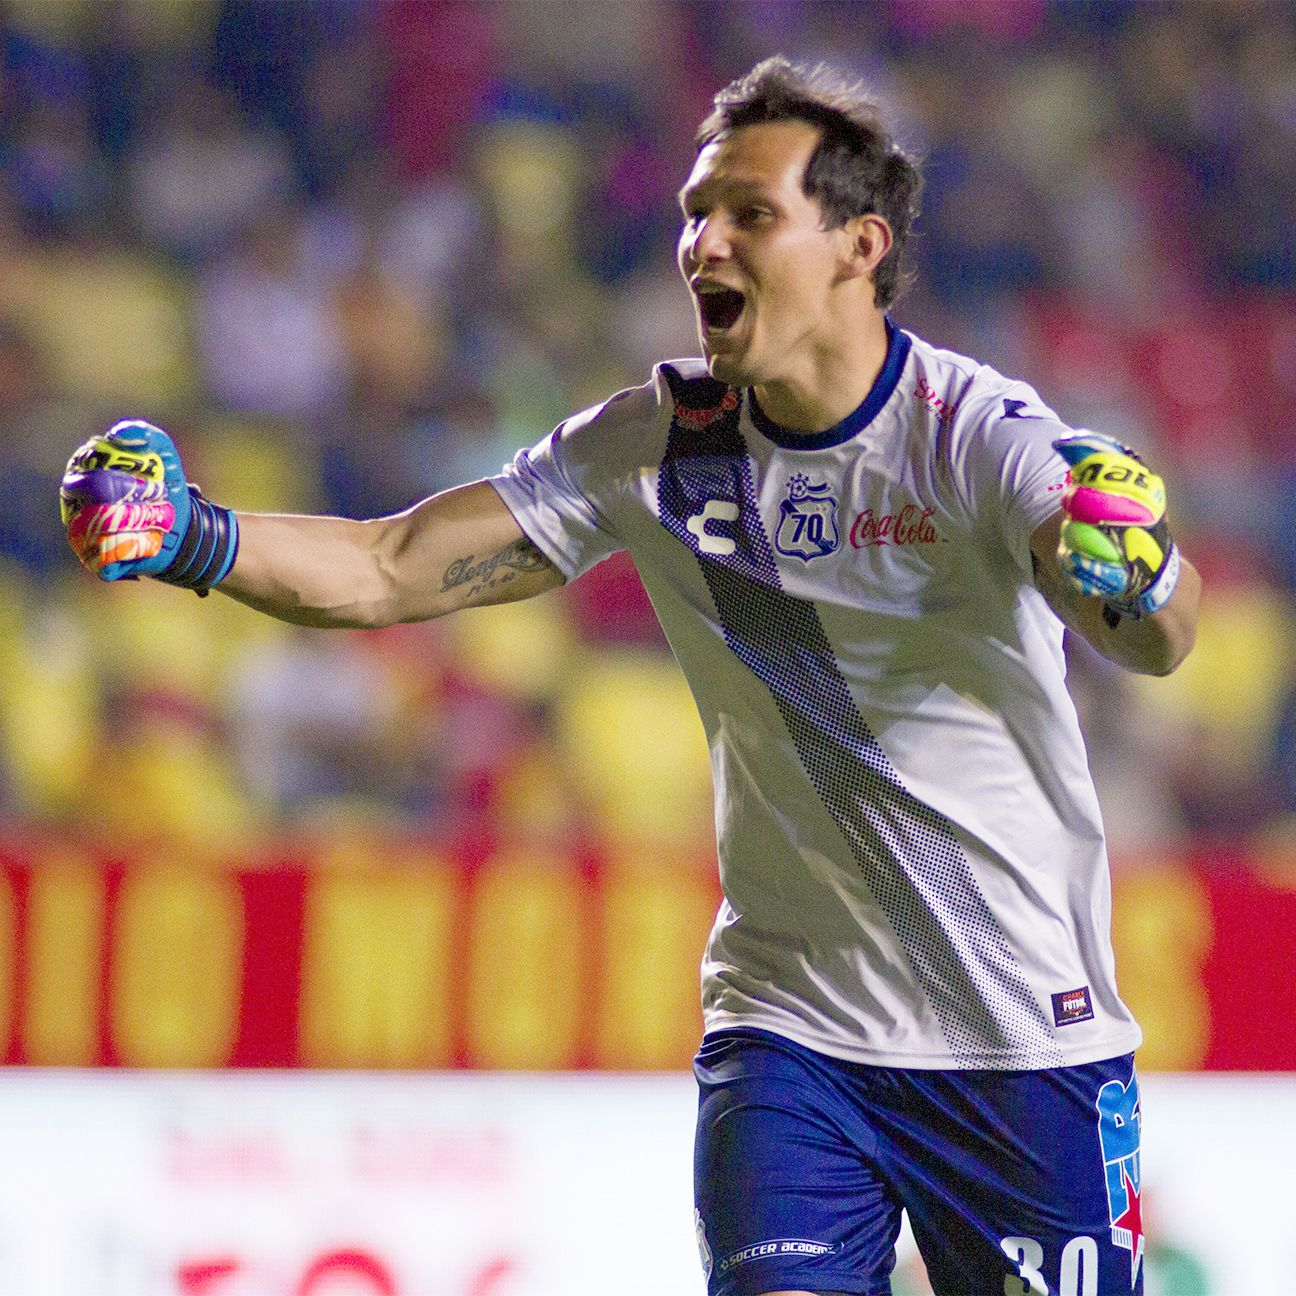 Rodolfo Cota and Puebla are turning their relegation worries into hopes of a title run.